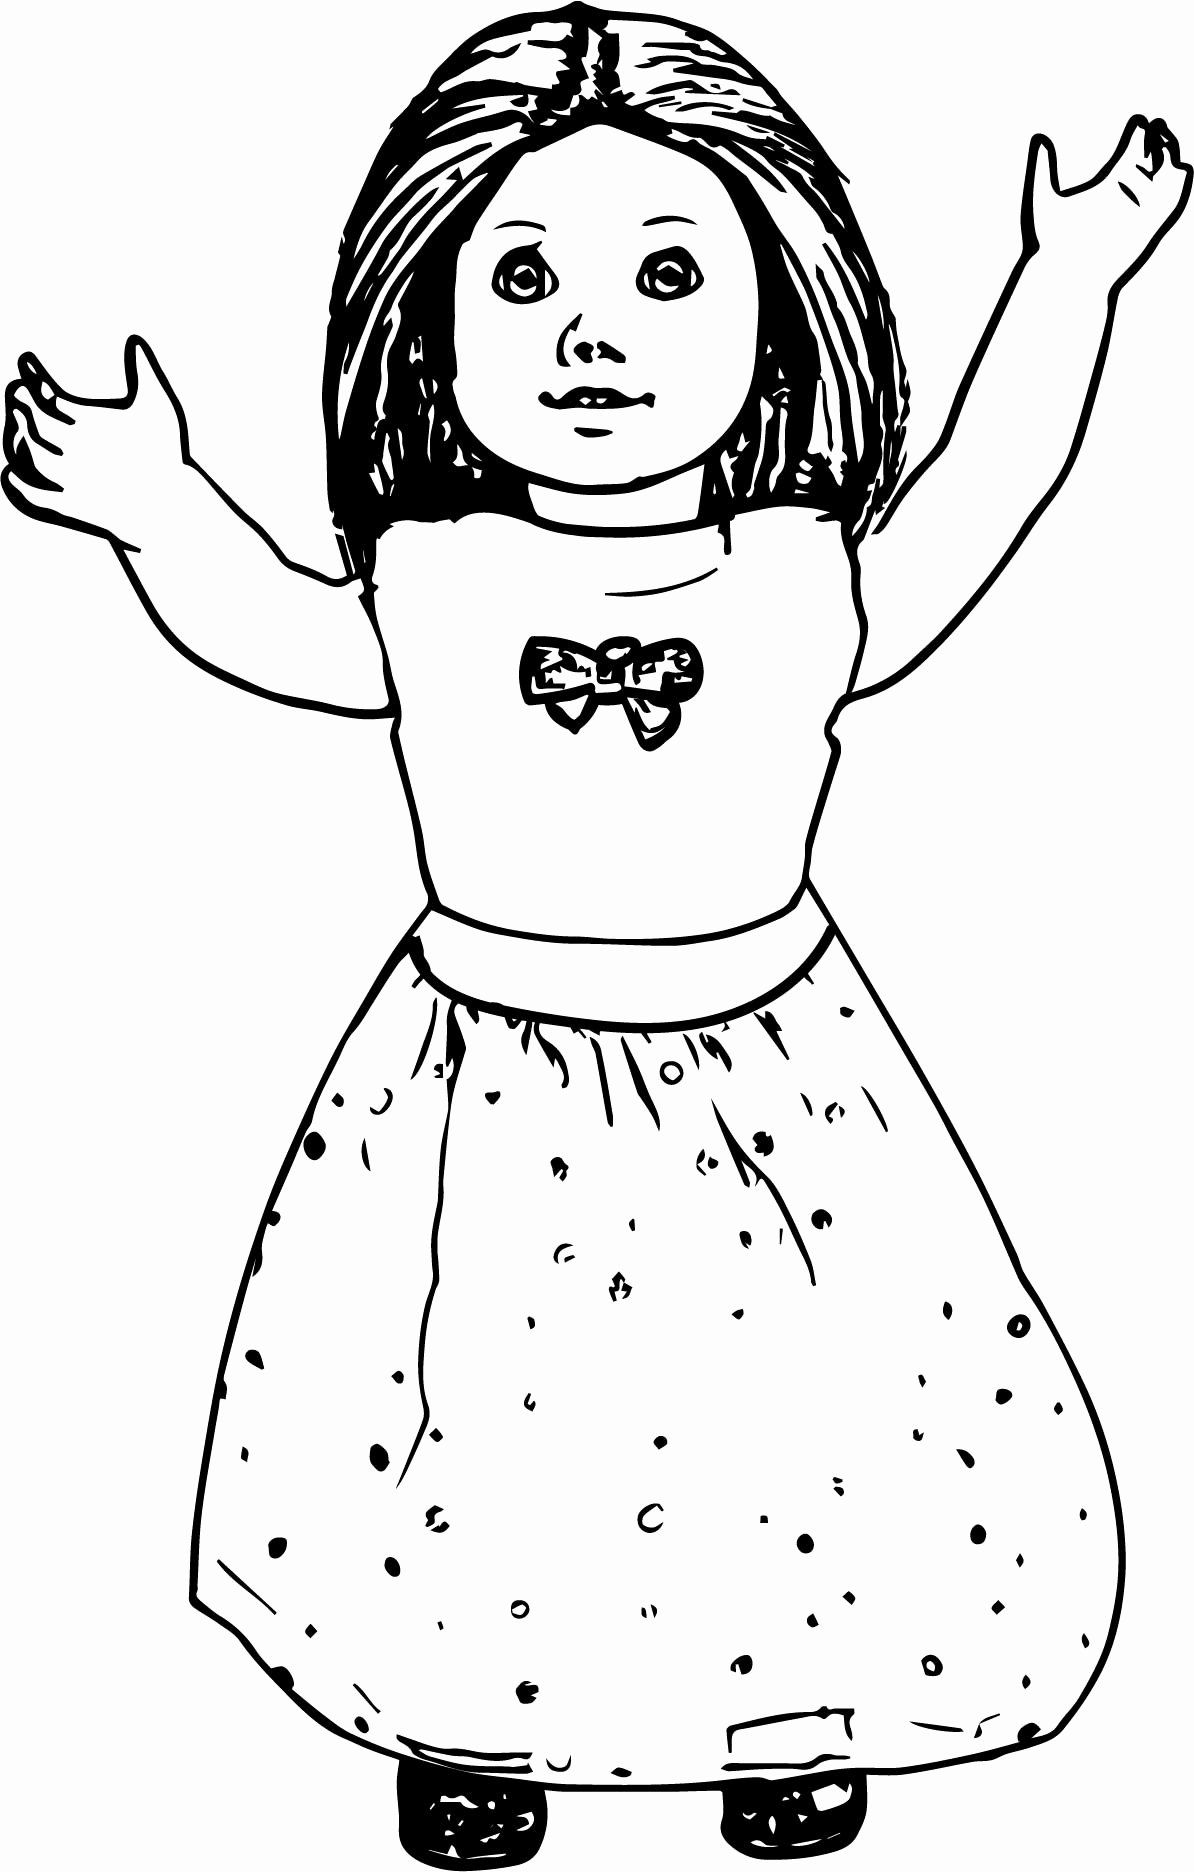 28 American Girl Doll Coloring Page in 2020 | Coloring pages for girls,  American girl doll printables, American girl